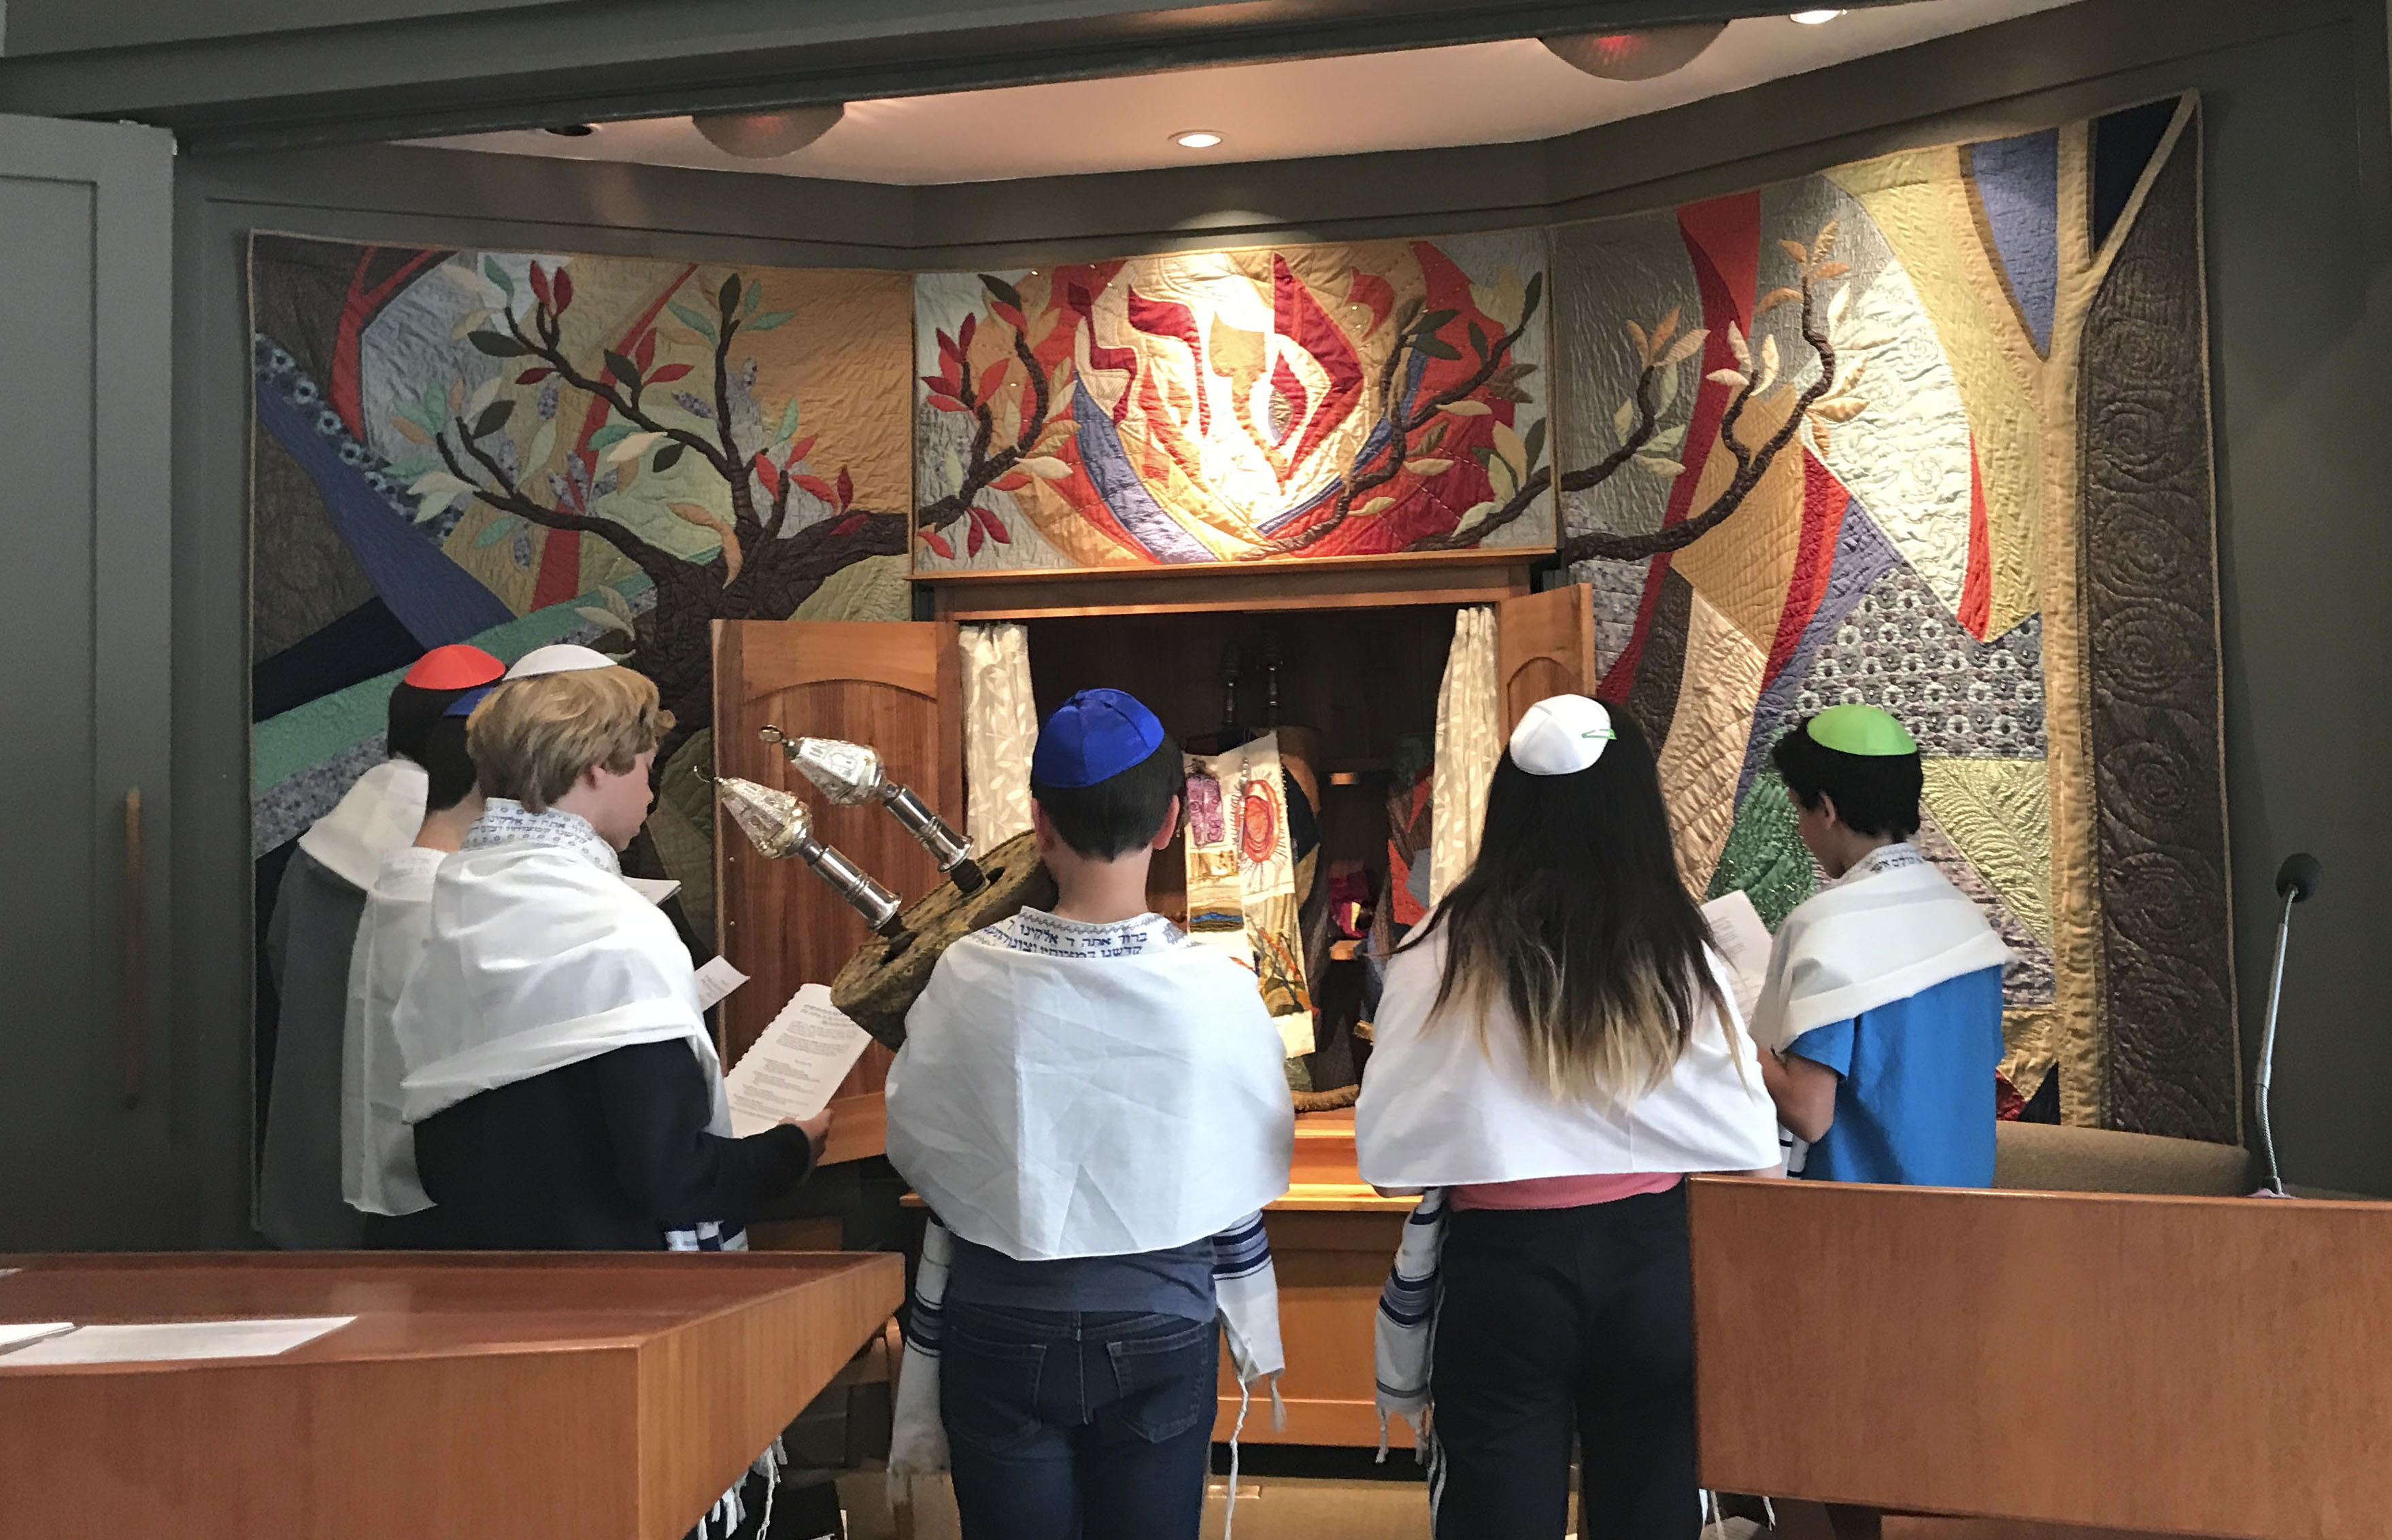 B'nai mitzvah students from Palo Alto School for Jewish Education